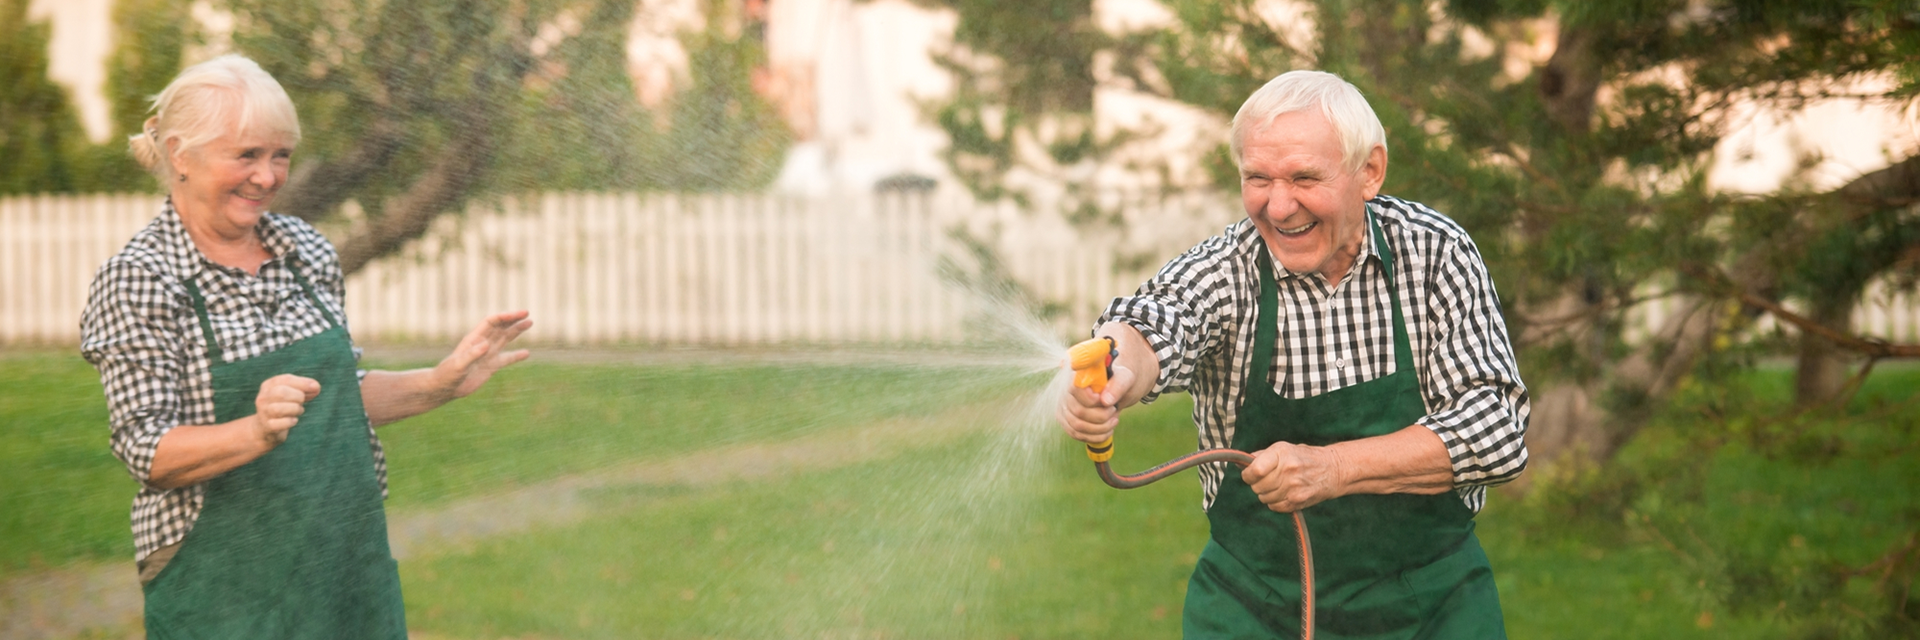 Happy Senior Couple having fun with water hose